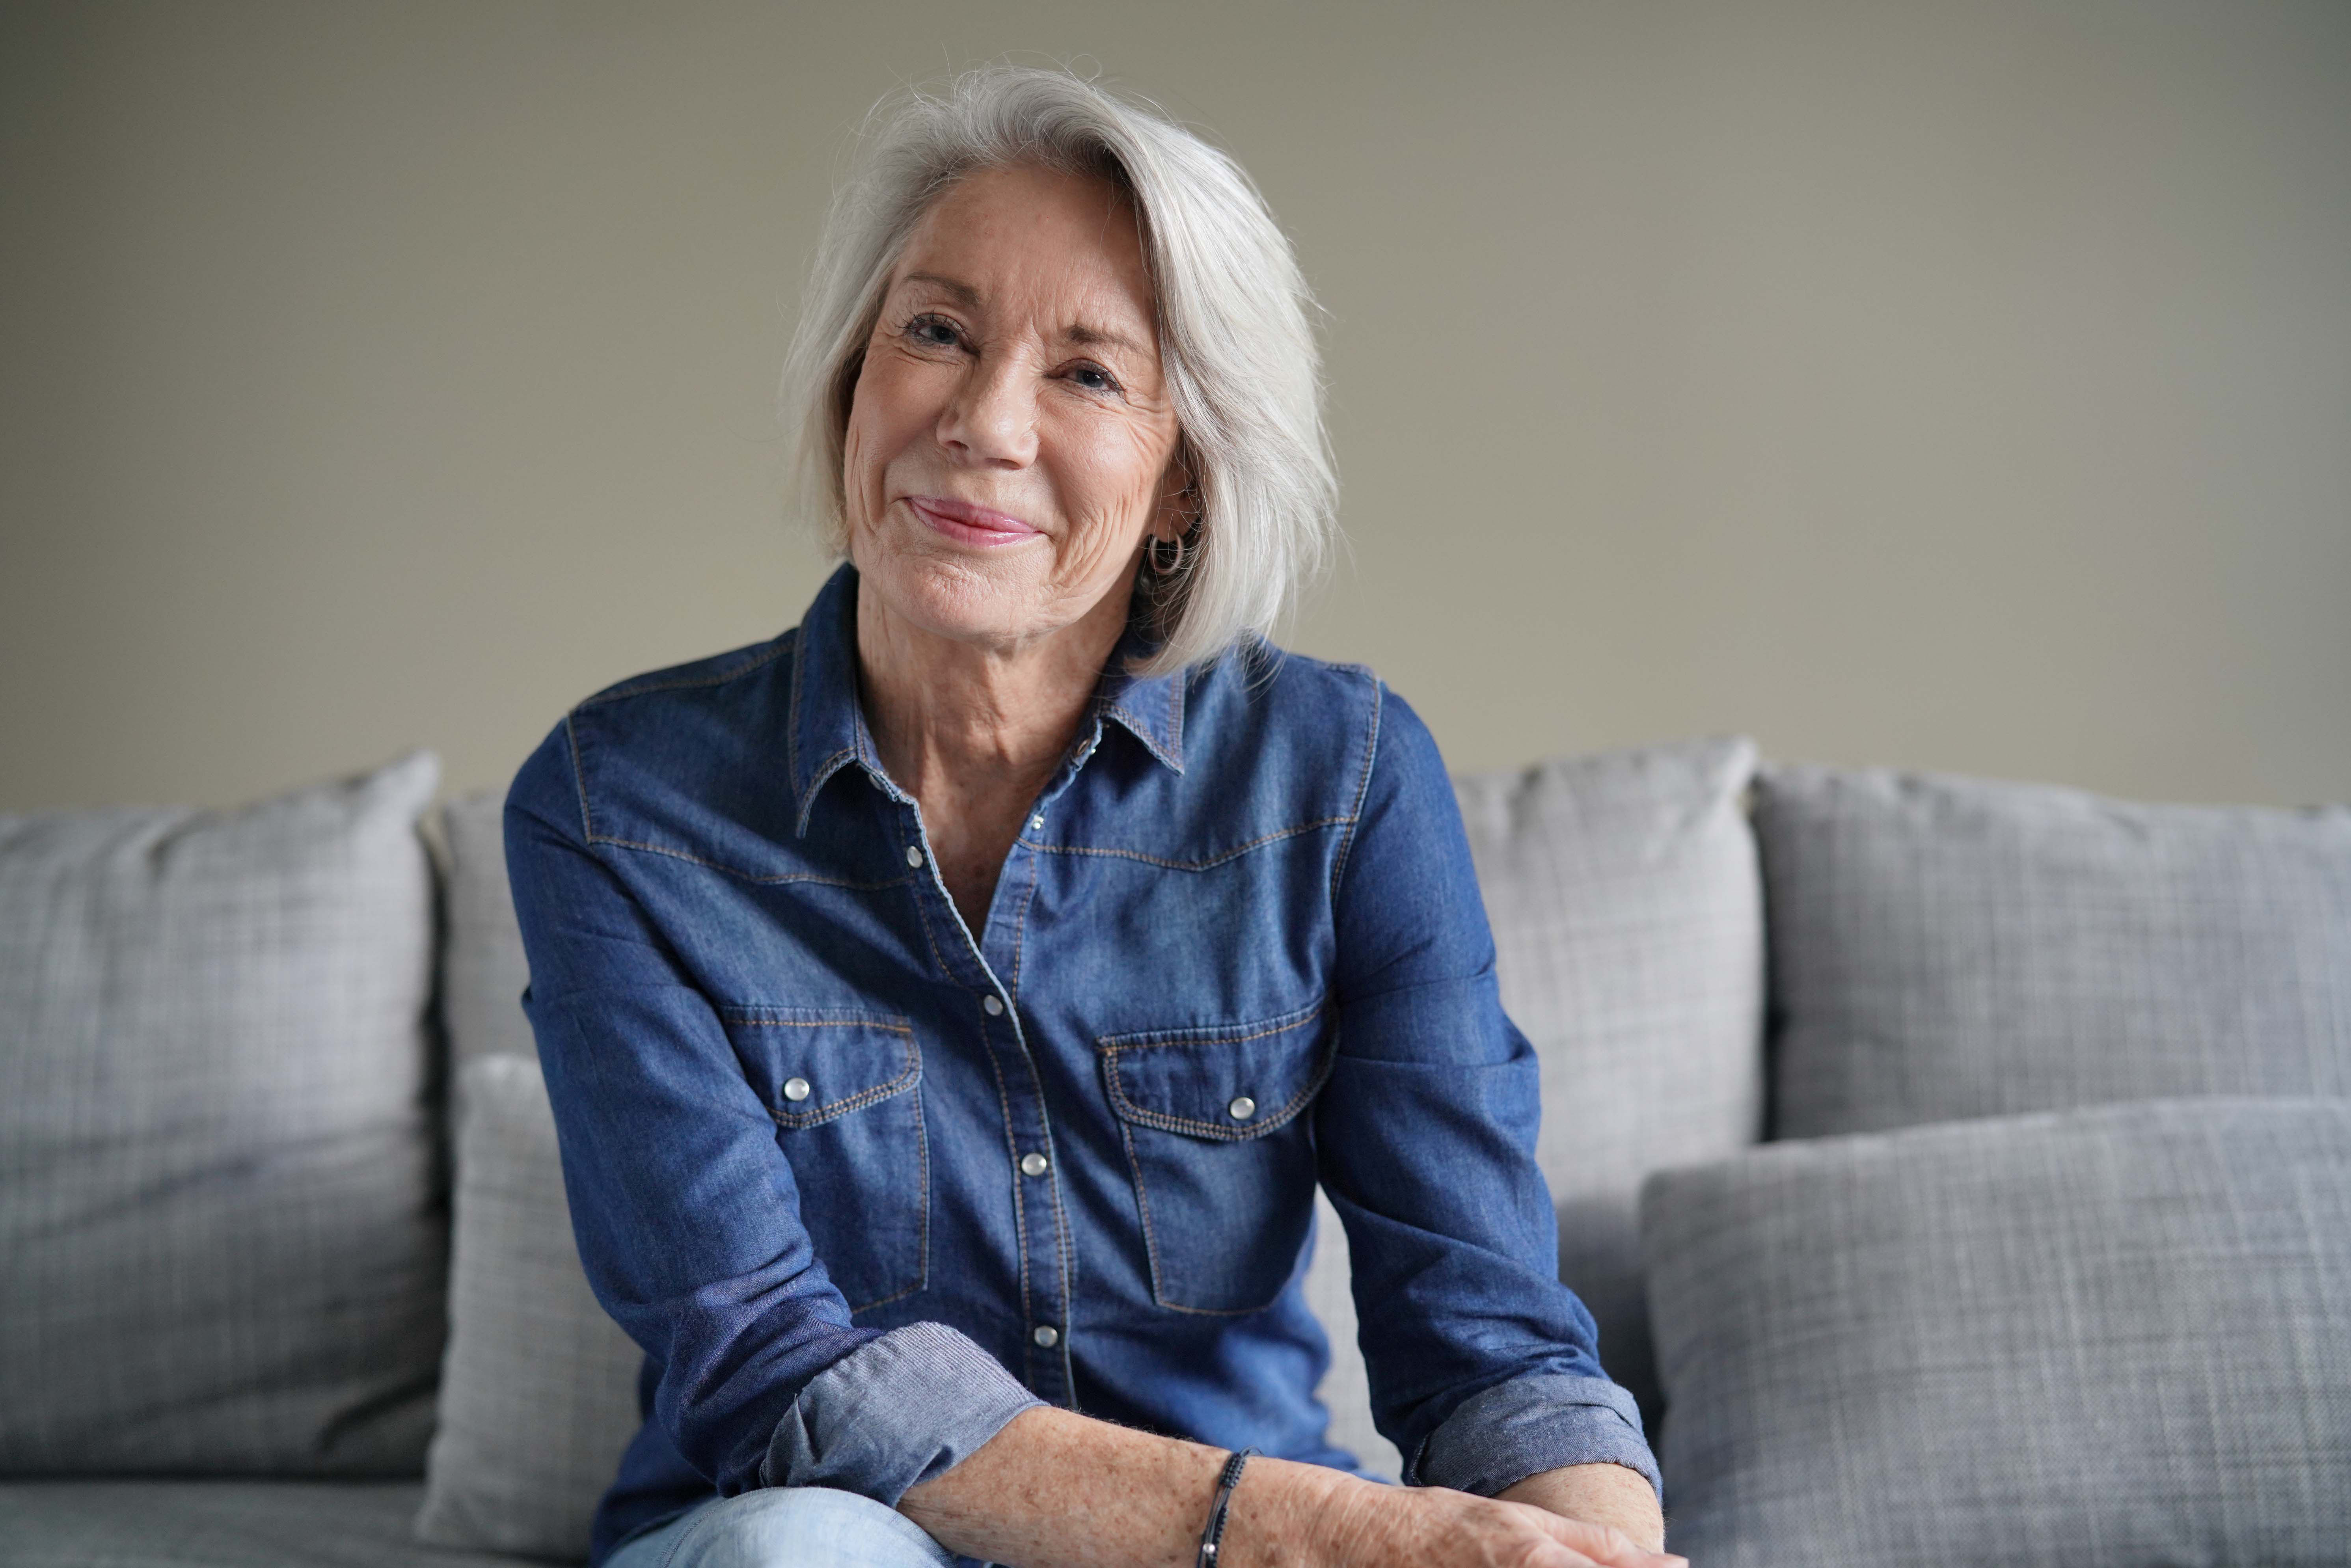 Portrait of modern senior woman in all denim on couch